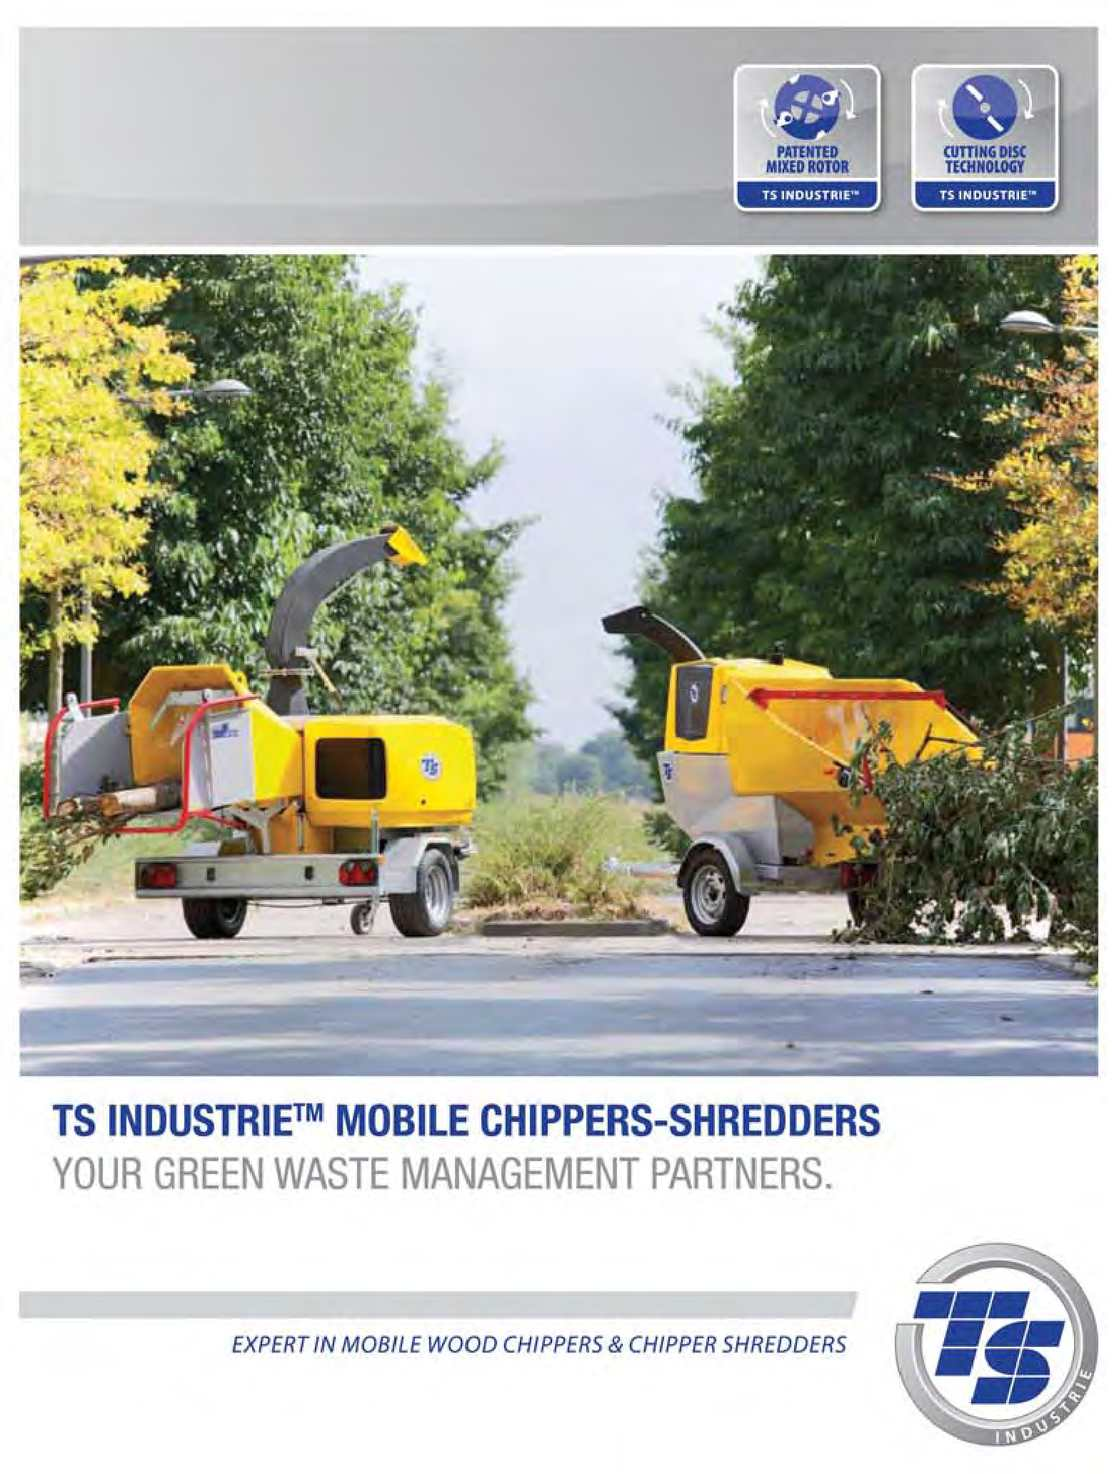 Calaméo - TS INDUSTRIE mobile Chippers-Shredders